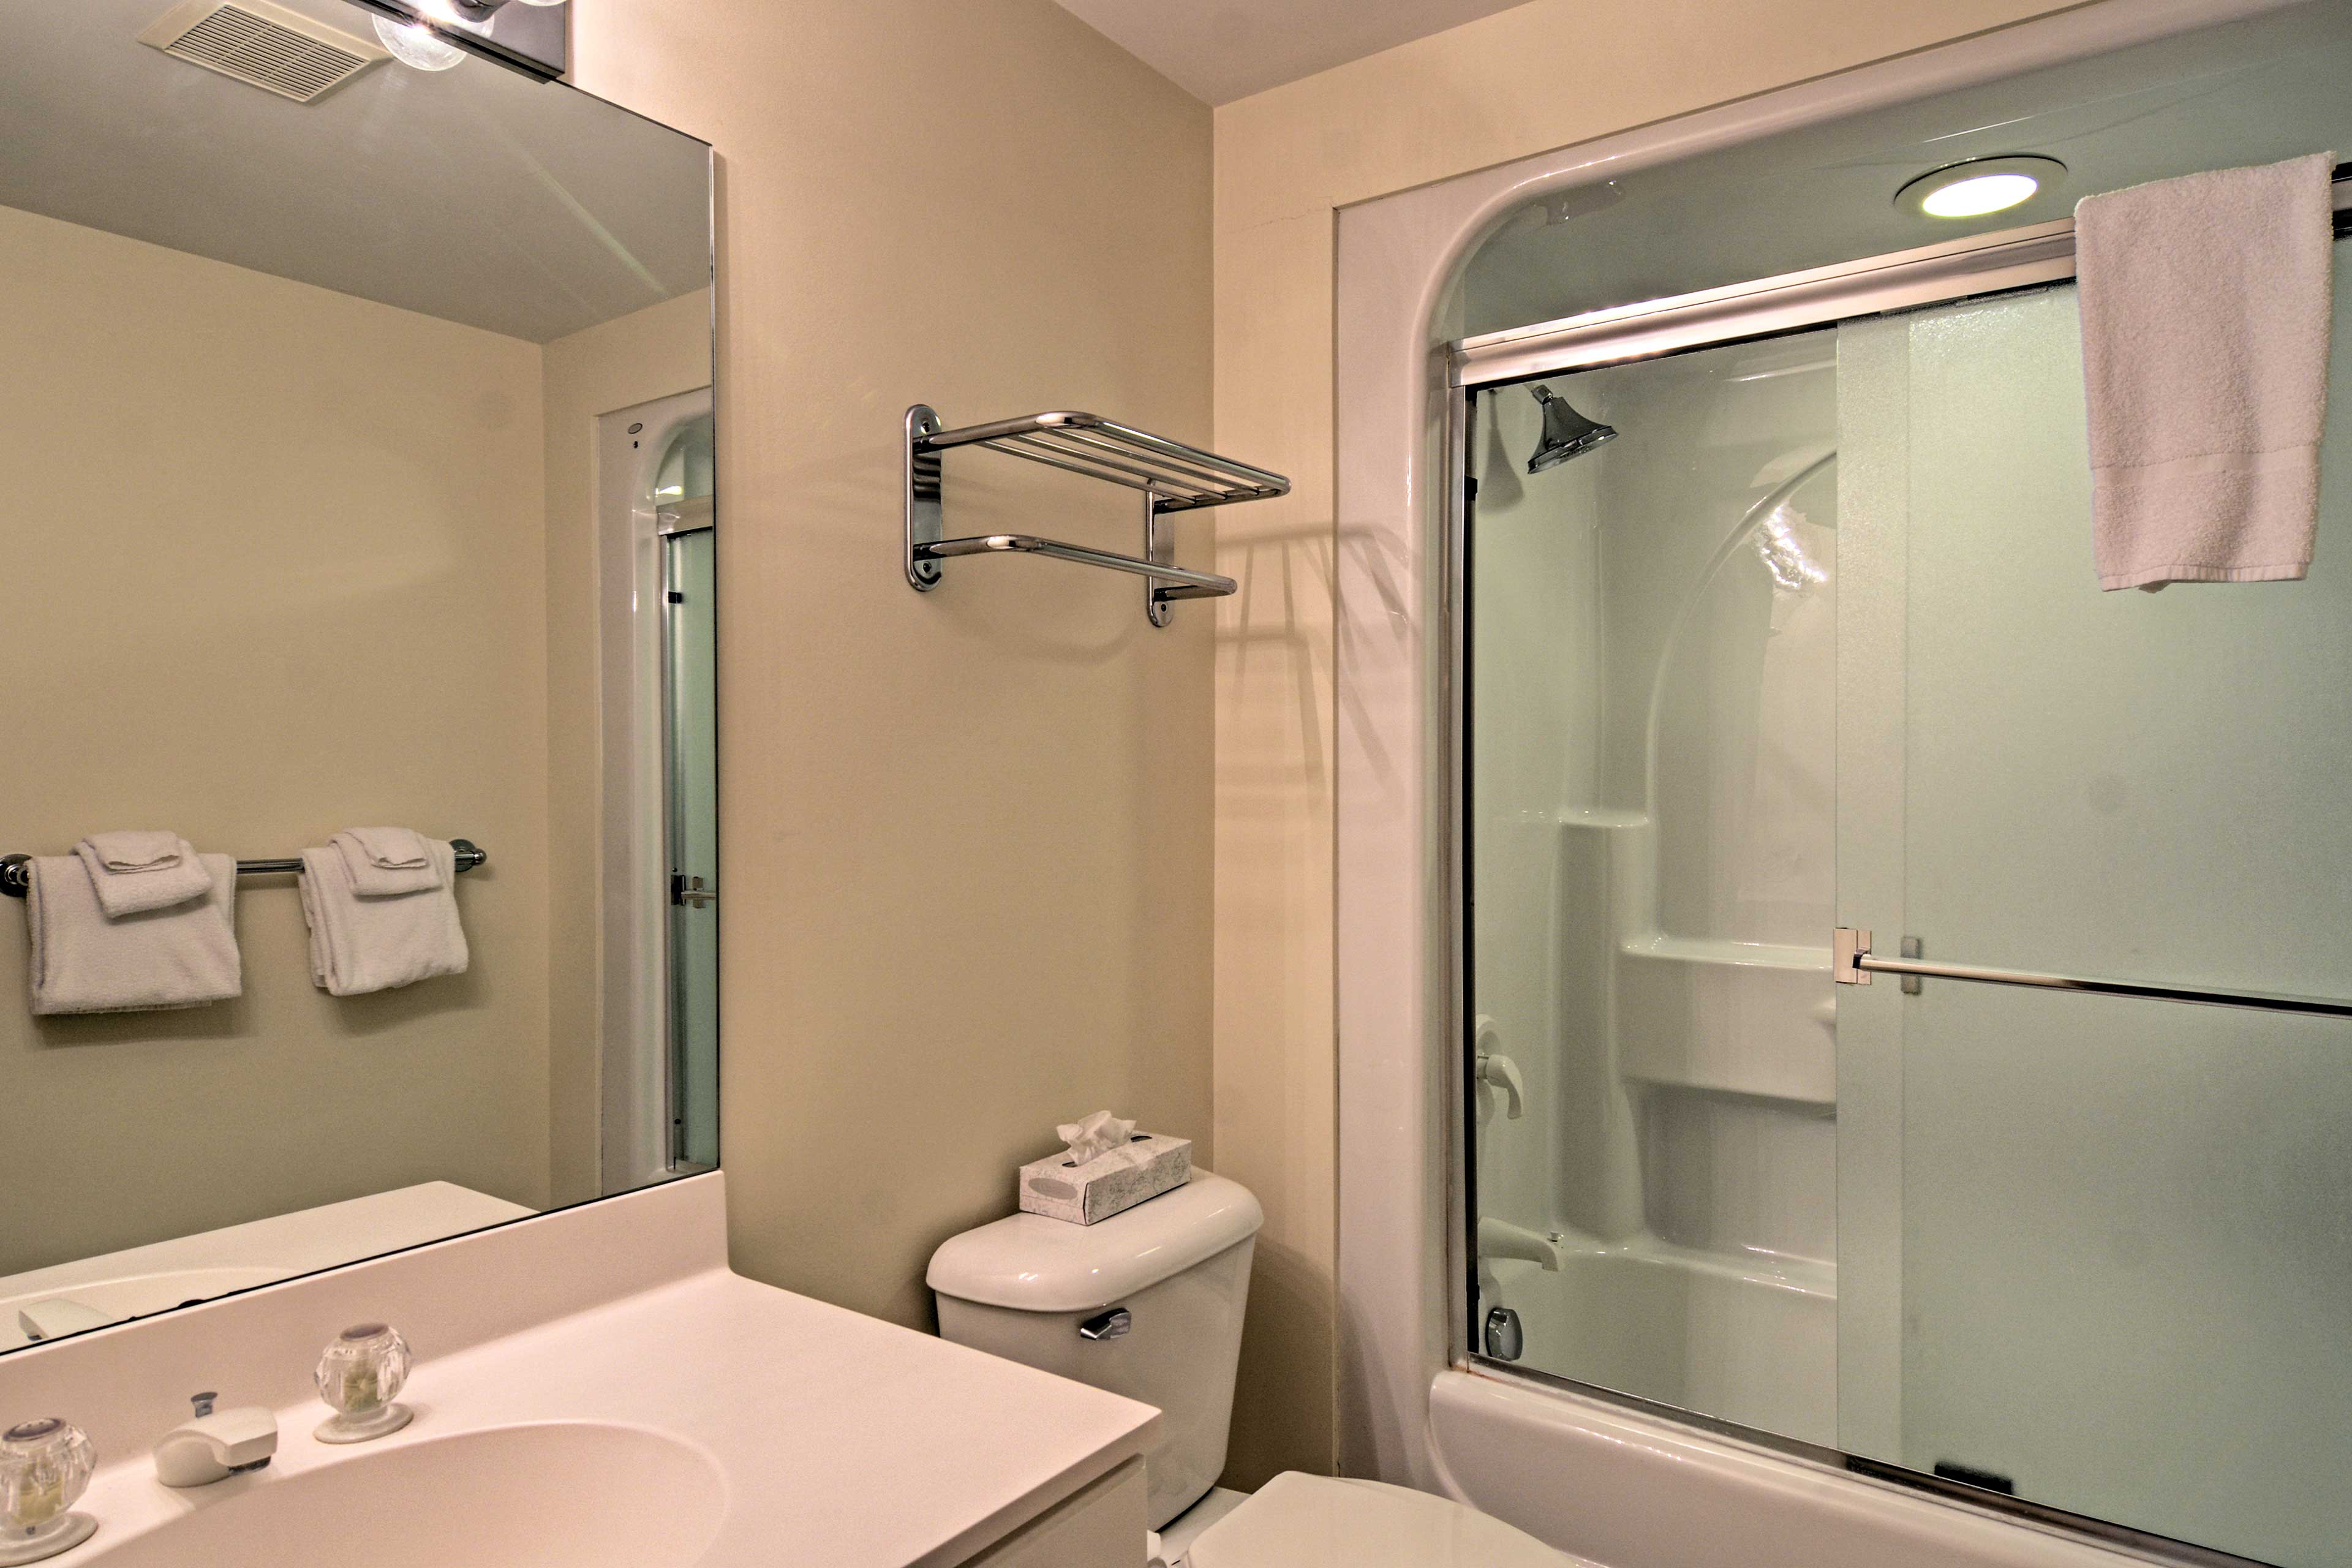 Take a refreshing shower in this lovely shower/tub combo.